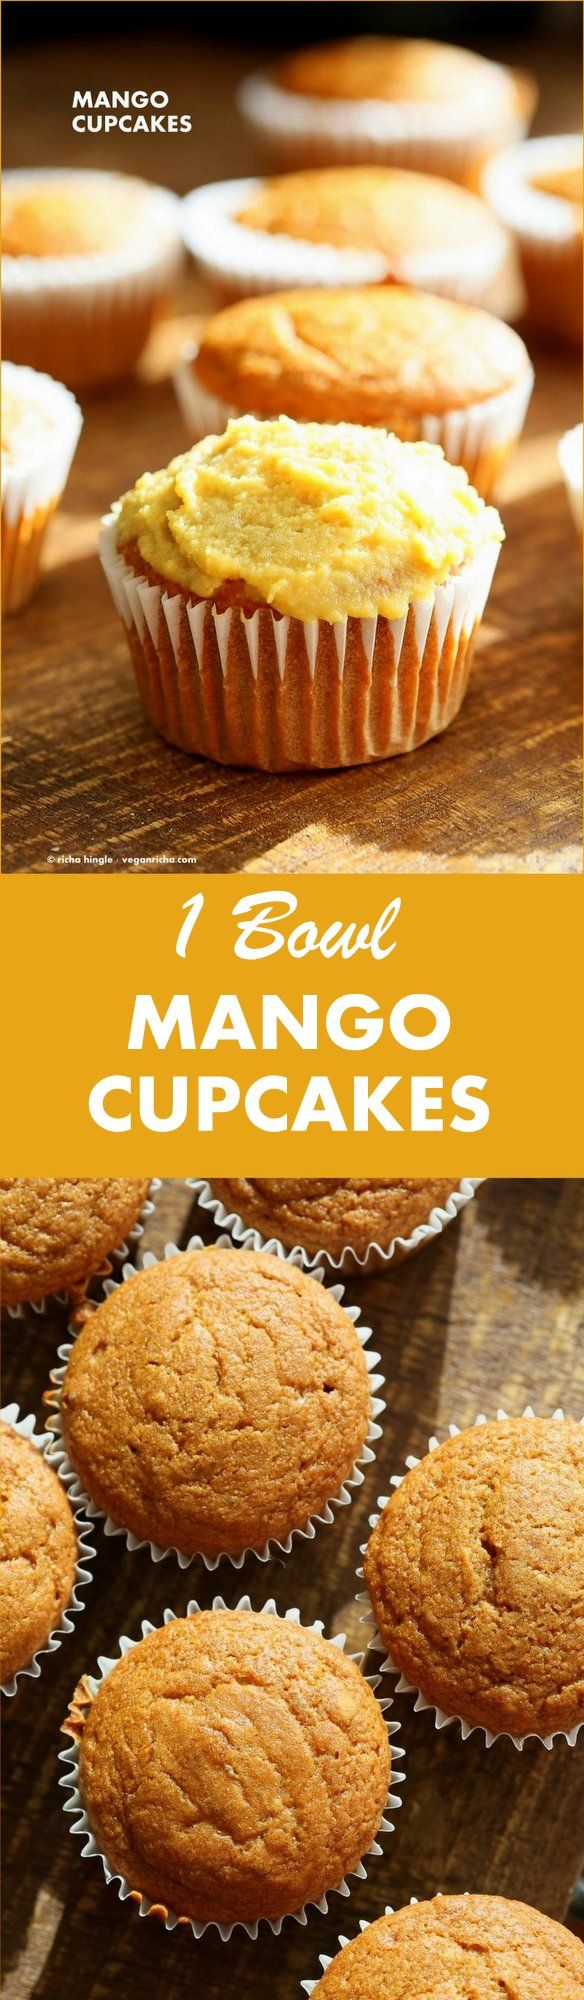 One Bowl Vegan Mango Cupcakes. Easy Mango Cupcake or Cake Recipe. Whisk up the dry ingredients. Add in mango puree and…